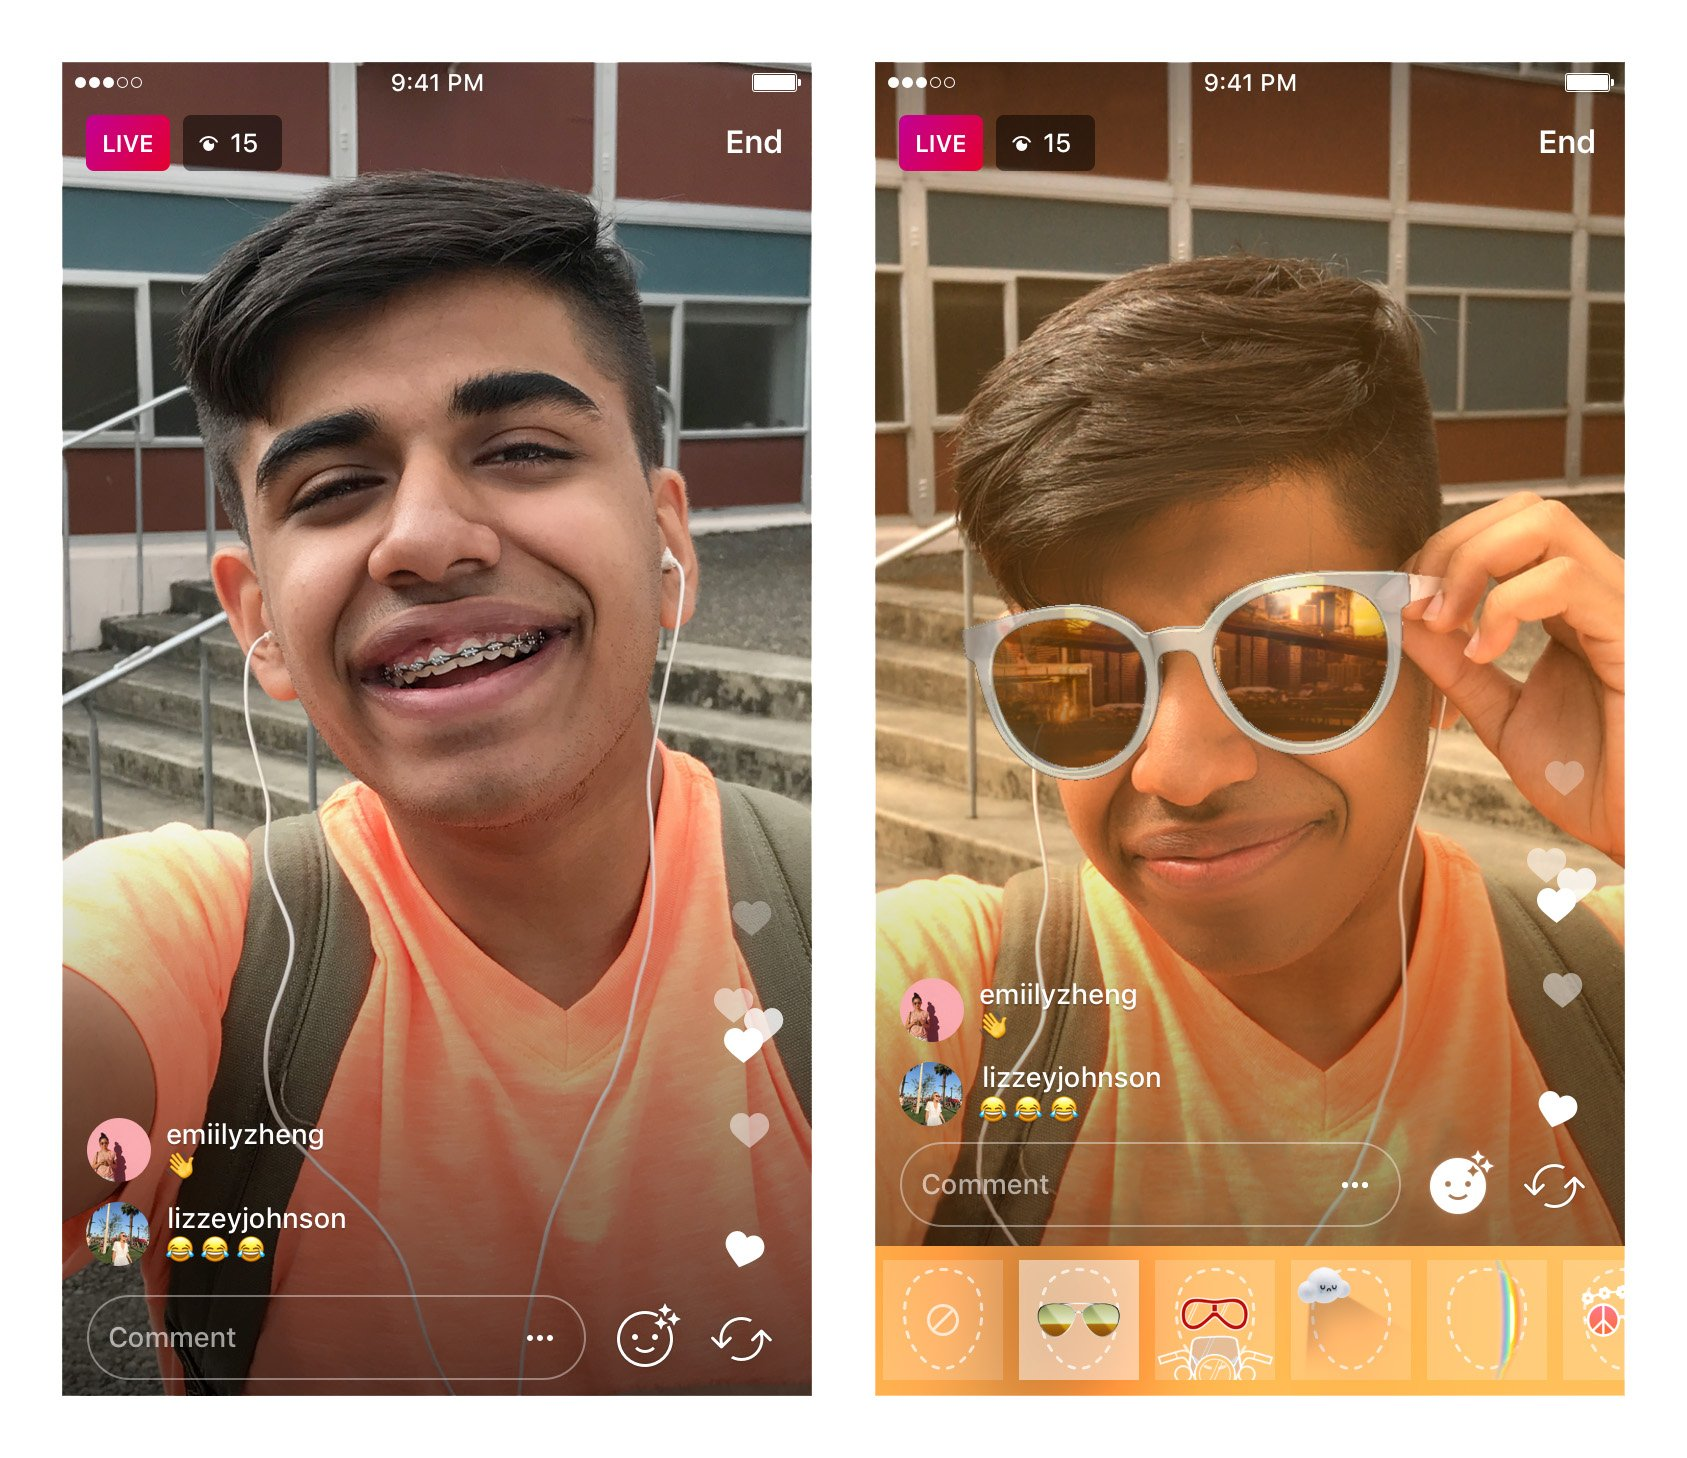 Starting today, you can play with face filters while sharing live video! ✨ https://t.co/YY2xeHfLPi https://t.co/O79lGe4rlc